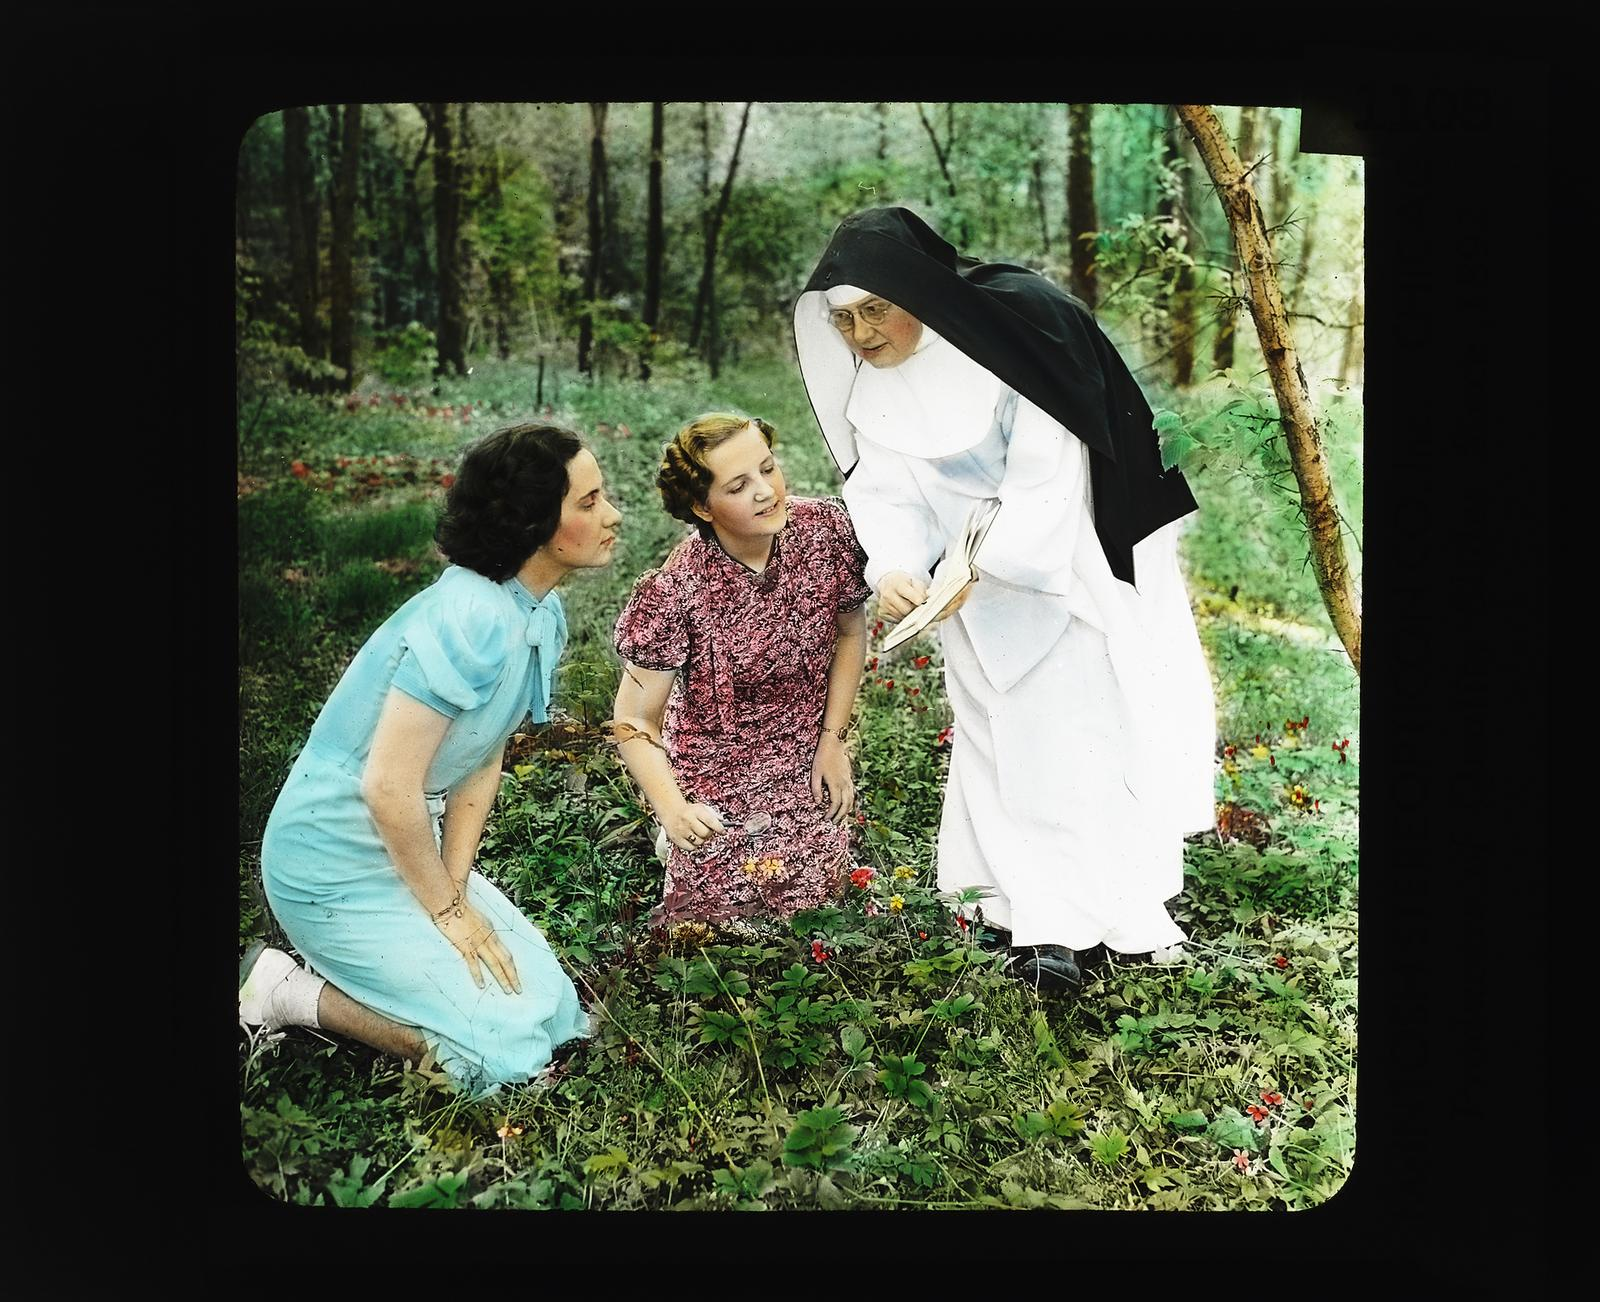 Activities: Picnic and Recreation, Nun and Two Women